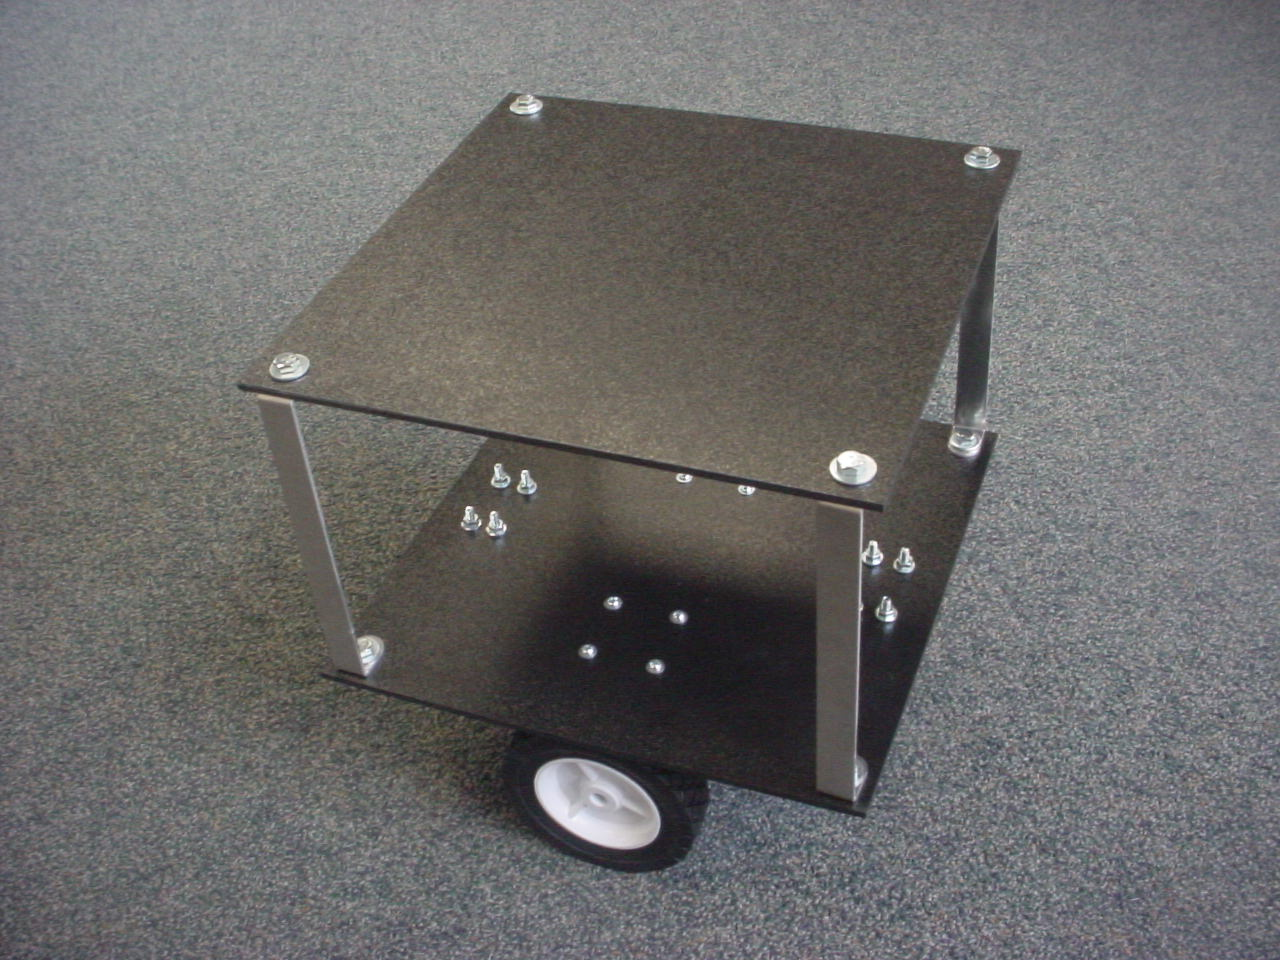 Max 14 Square Robot Base (14in x 14in)